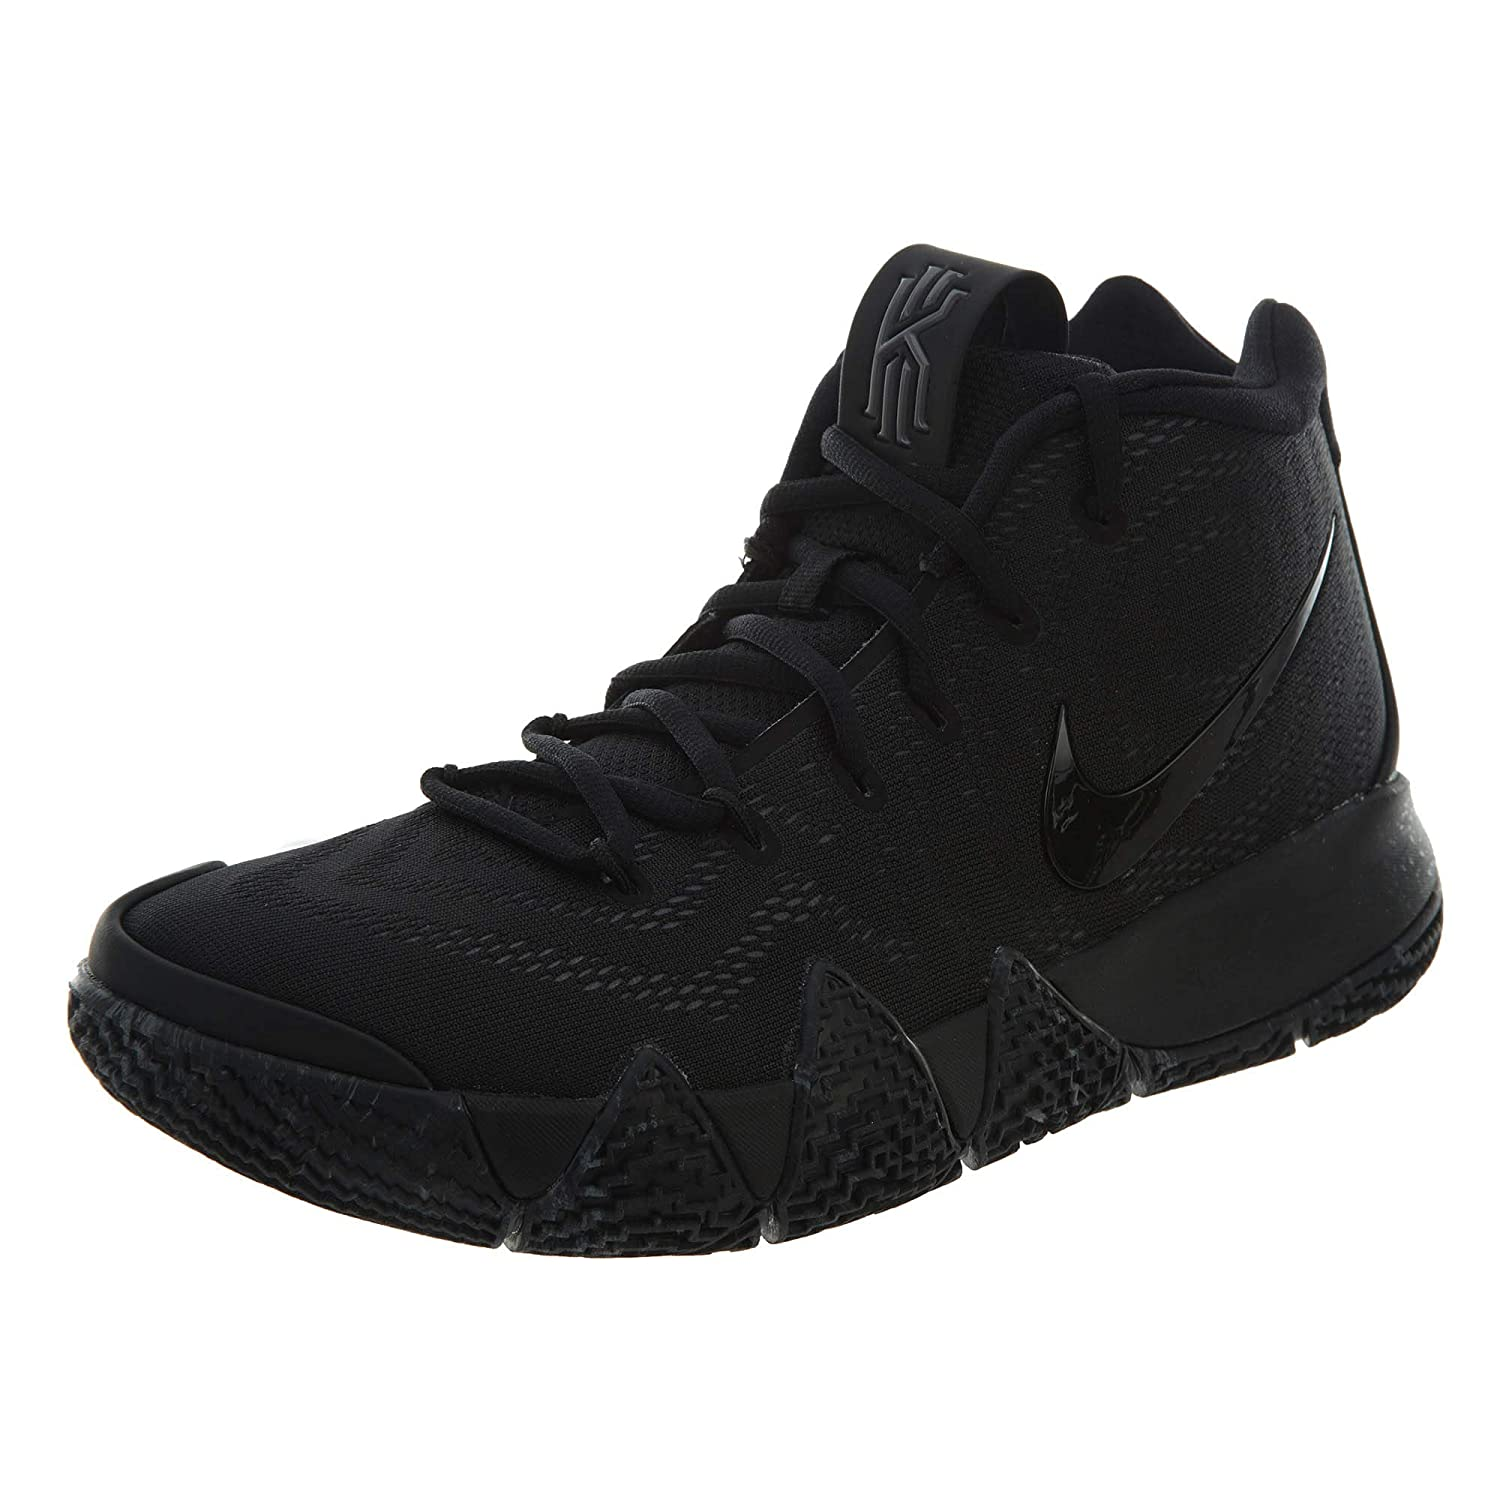 new concept 341d6 95dd2 Amazon.com | NIKE Men's Kyrie 4 Basketball Shoes (8.5, Black ...